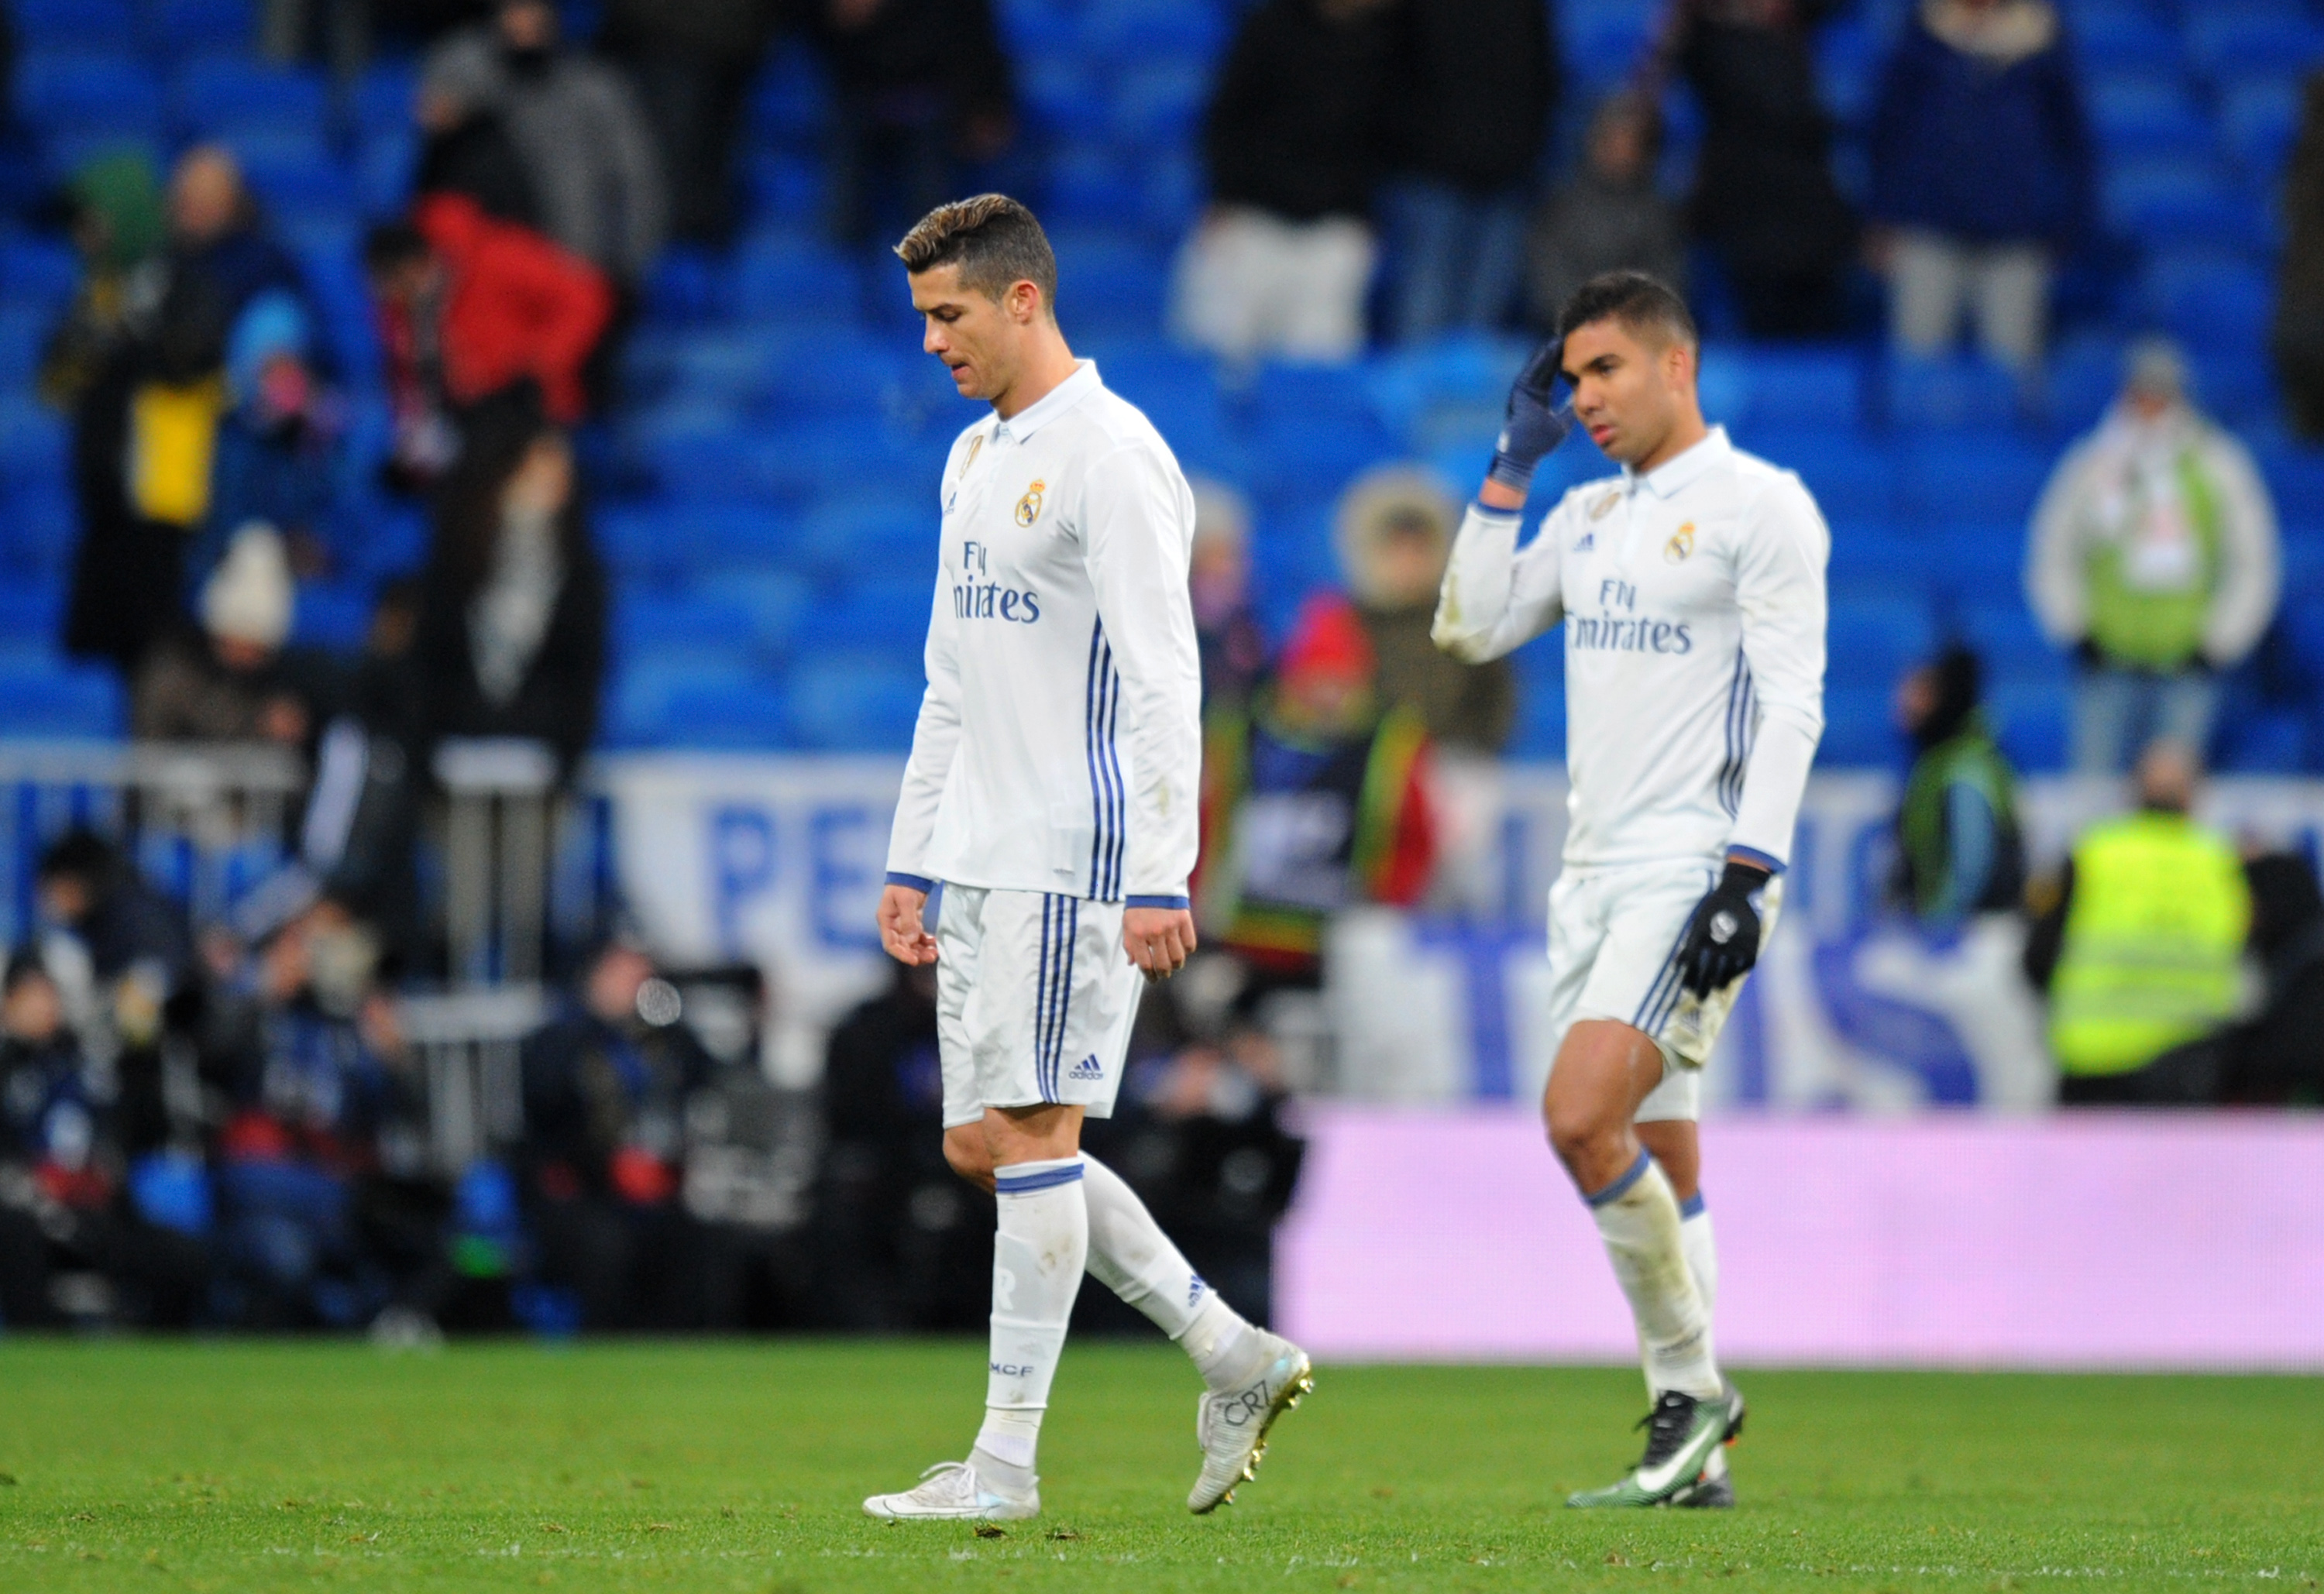 Real Madrid sconfitto dal Celta Vigo al Bernabeu